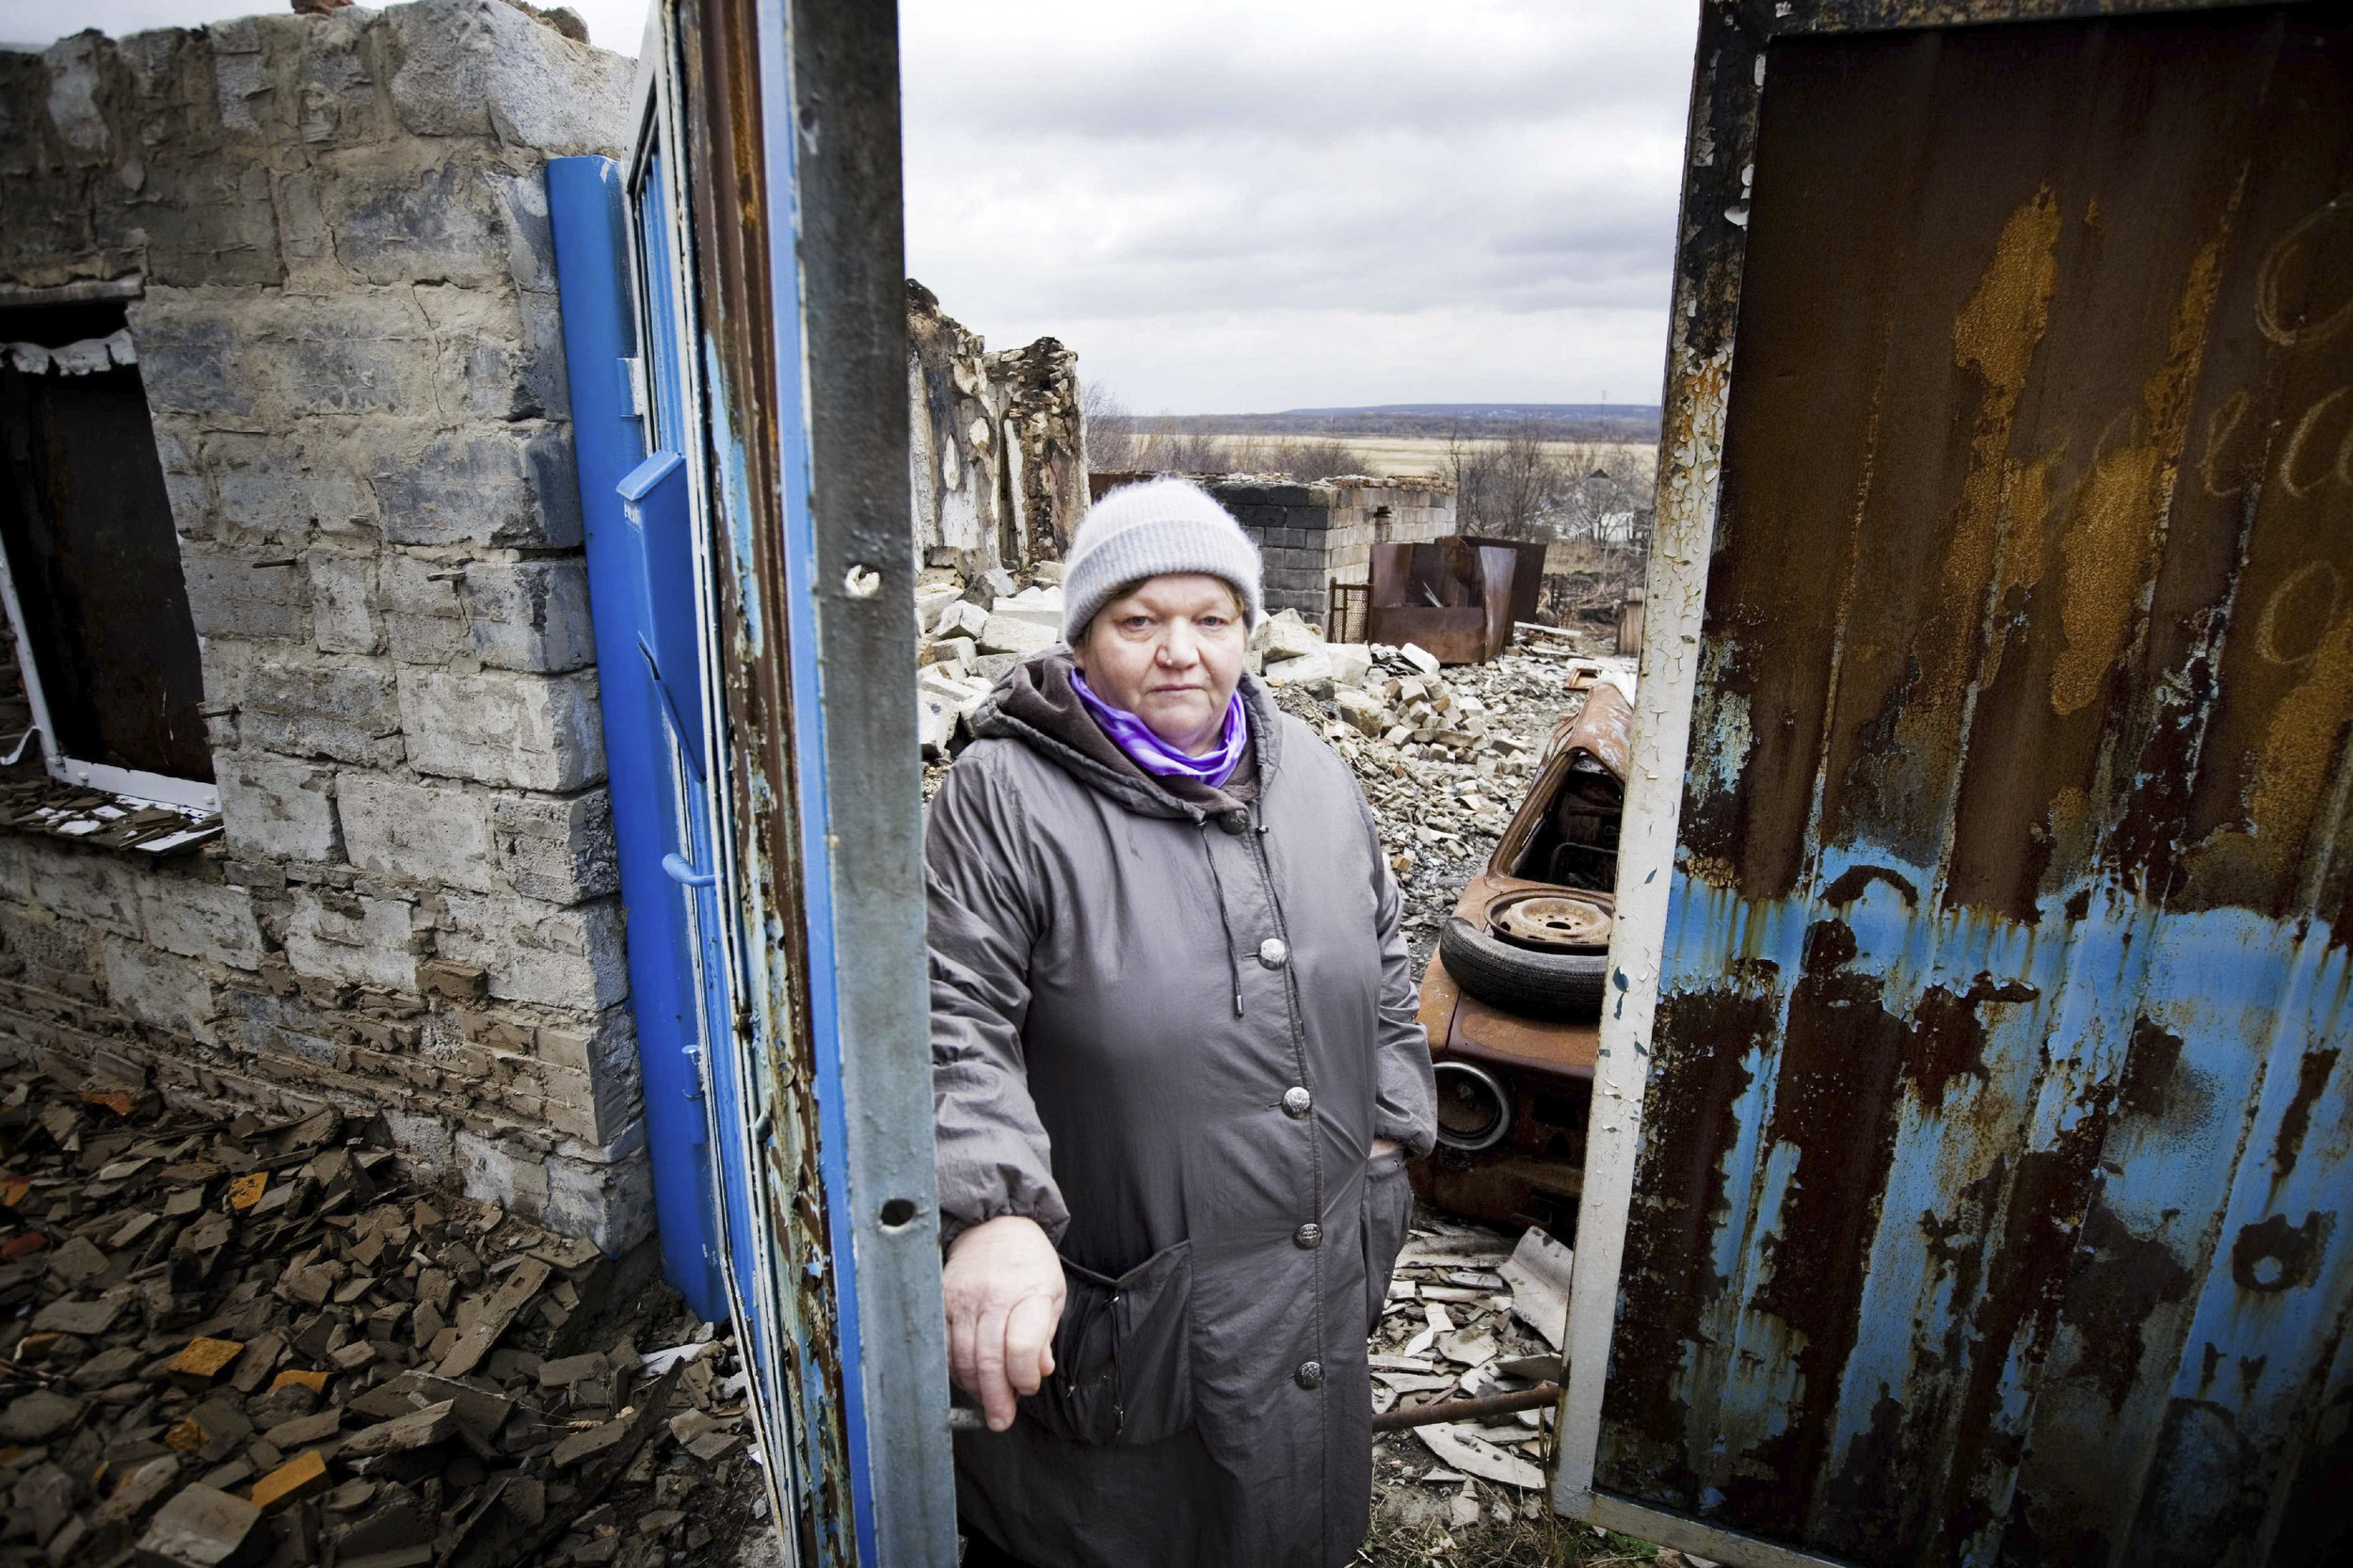 Lugansk, Bolshaia Vergunka village, Ukraine. The ICRC distributes construction materials to residents, including Valentina, pictured, to reconstruct their houses. Here, Valentina stands in front of the ruins of her house, where her husband was killed, due to the proximity to the front line.